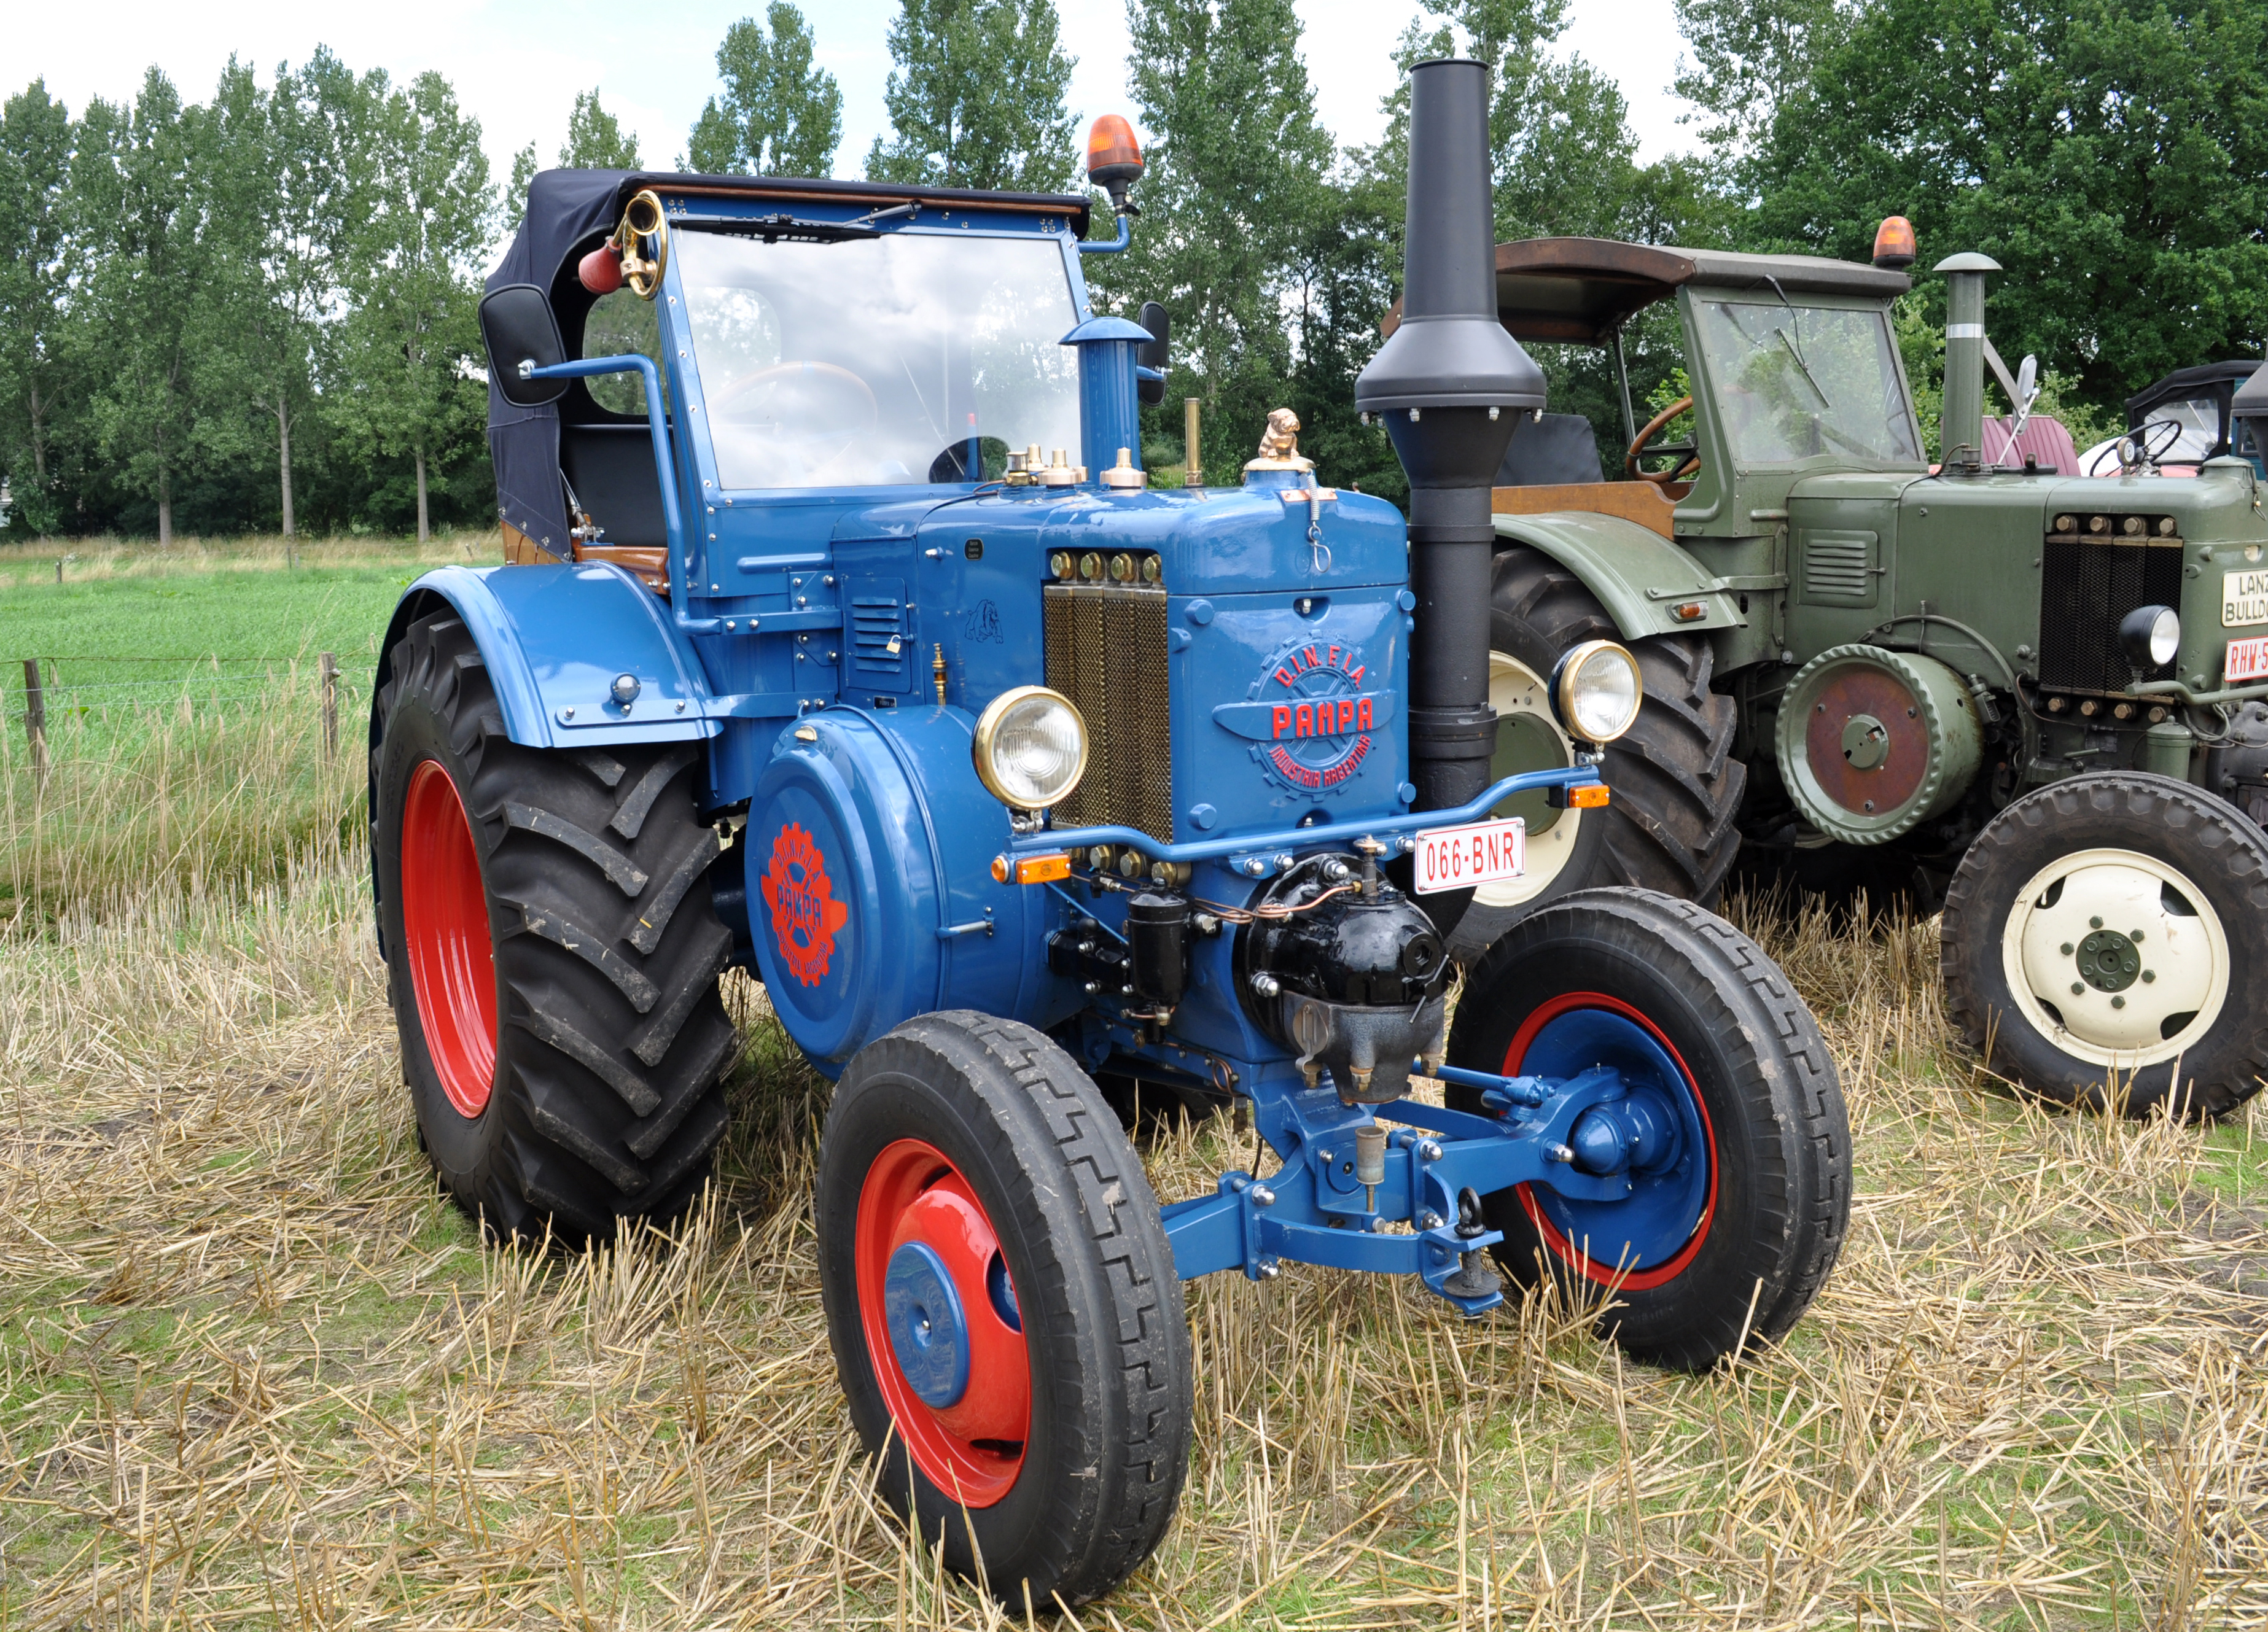 lanz bulldog with File P A T01 Lanz Bulldog Tractor on Skoda Liaz furthermore Unsere Oldtimers as well 4932227 lanz Eilbulldog Rood together with Watch as well Lanz Bulldog Bulldog Tractor 1537285.